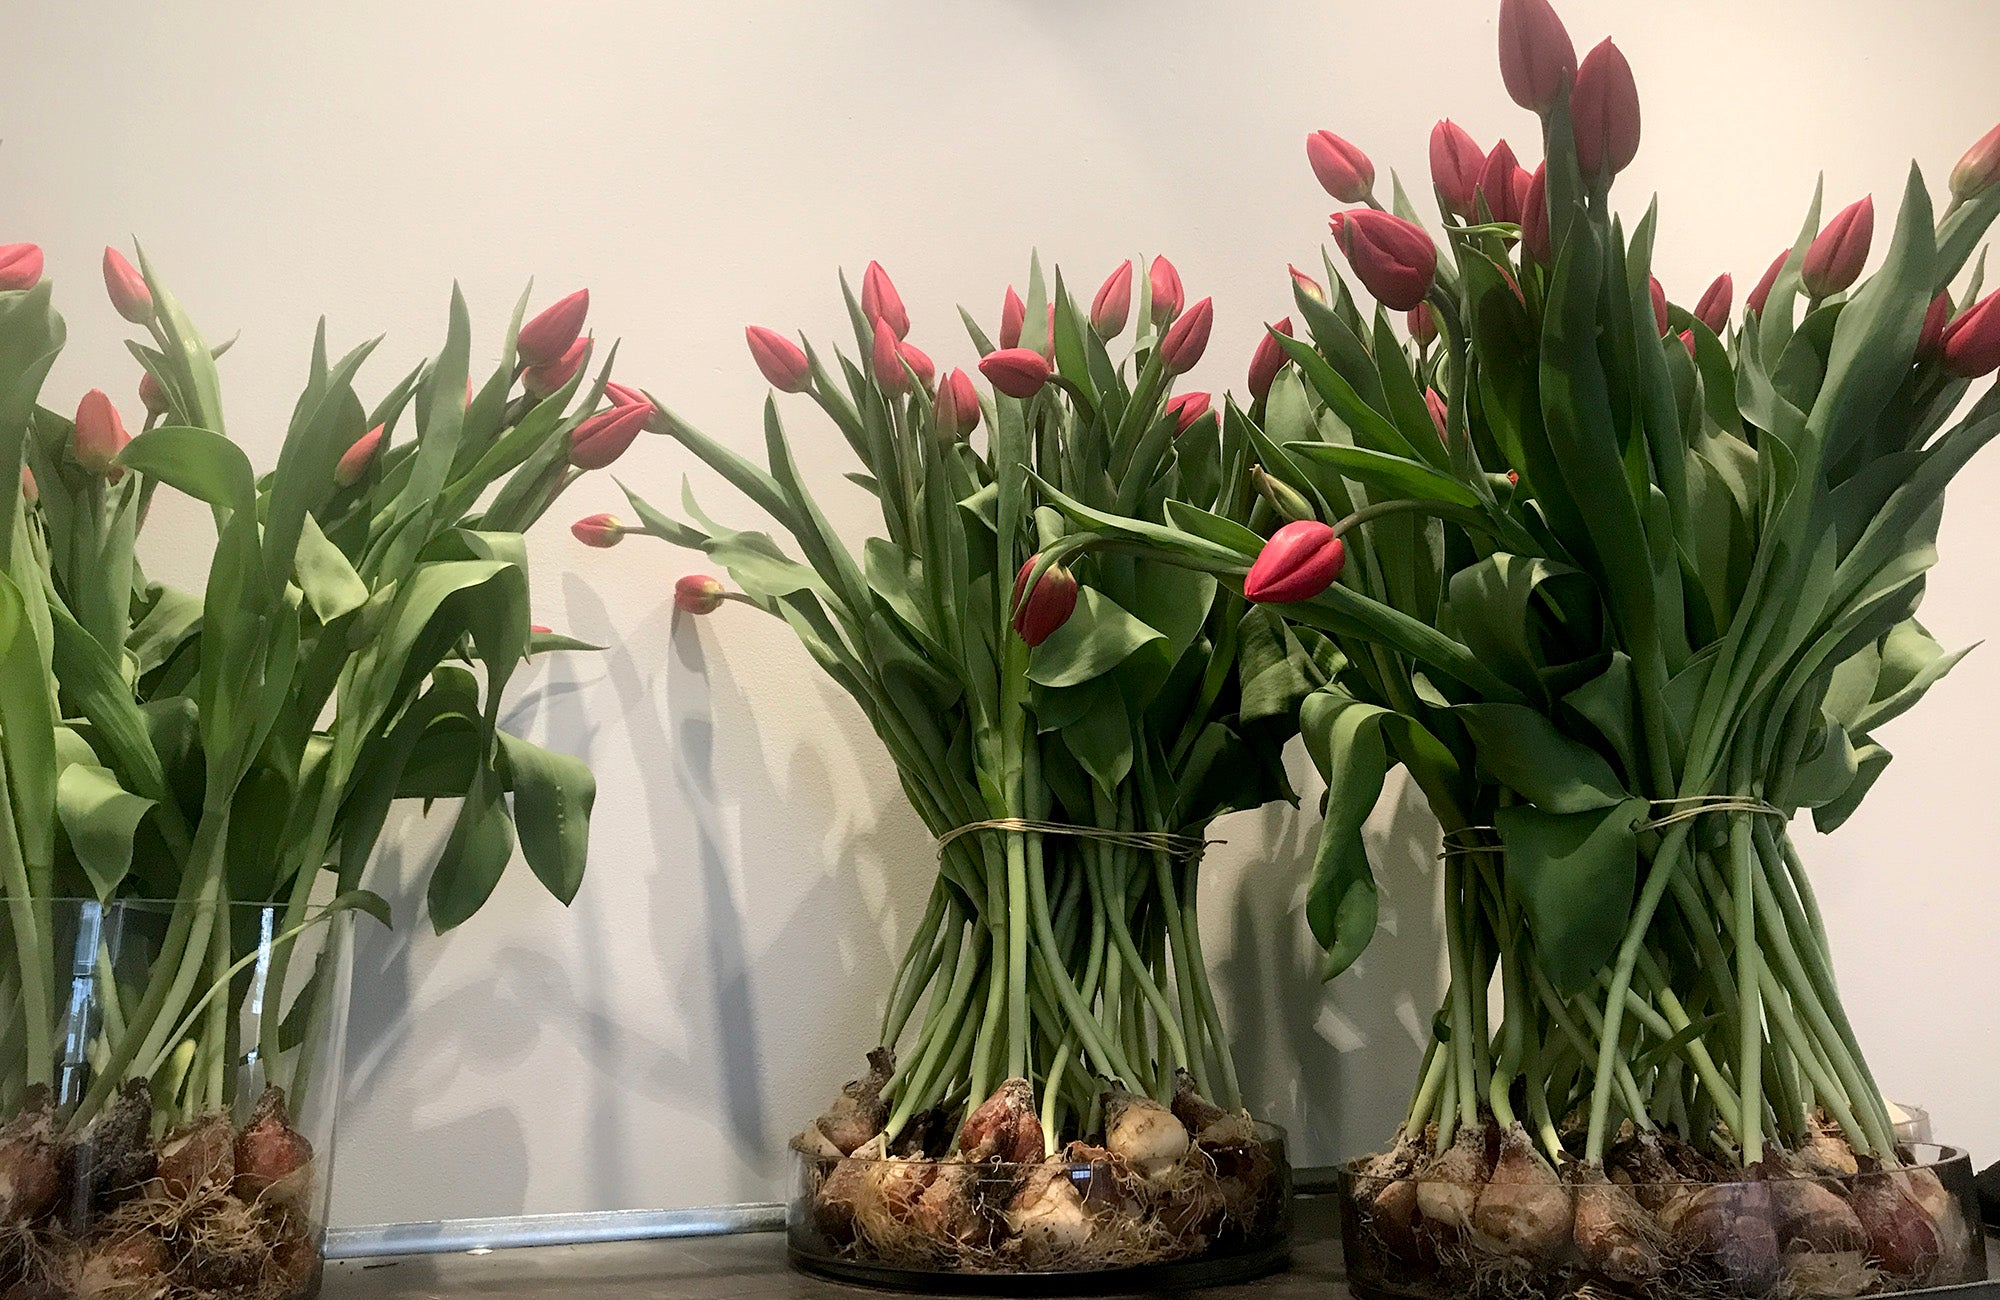 Tulips in vases without soil